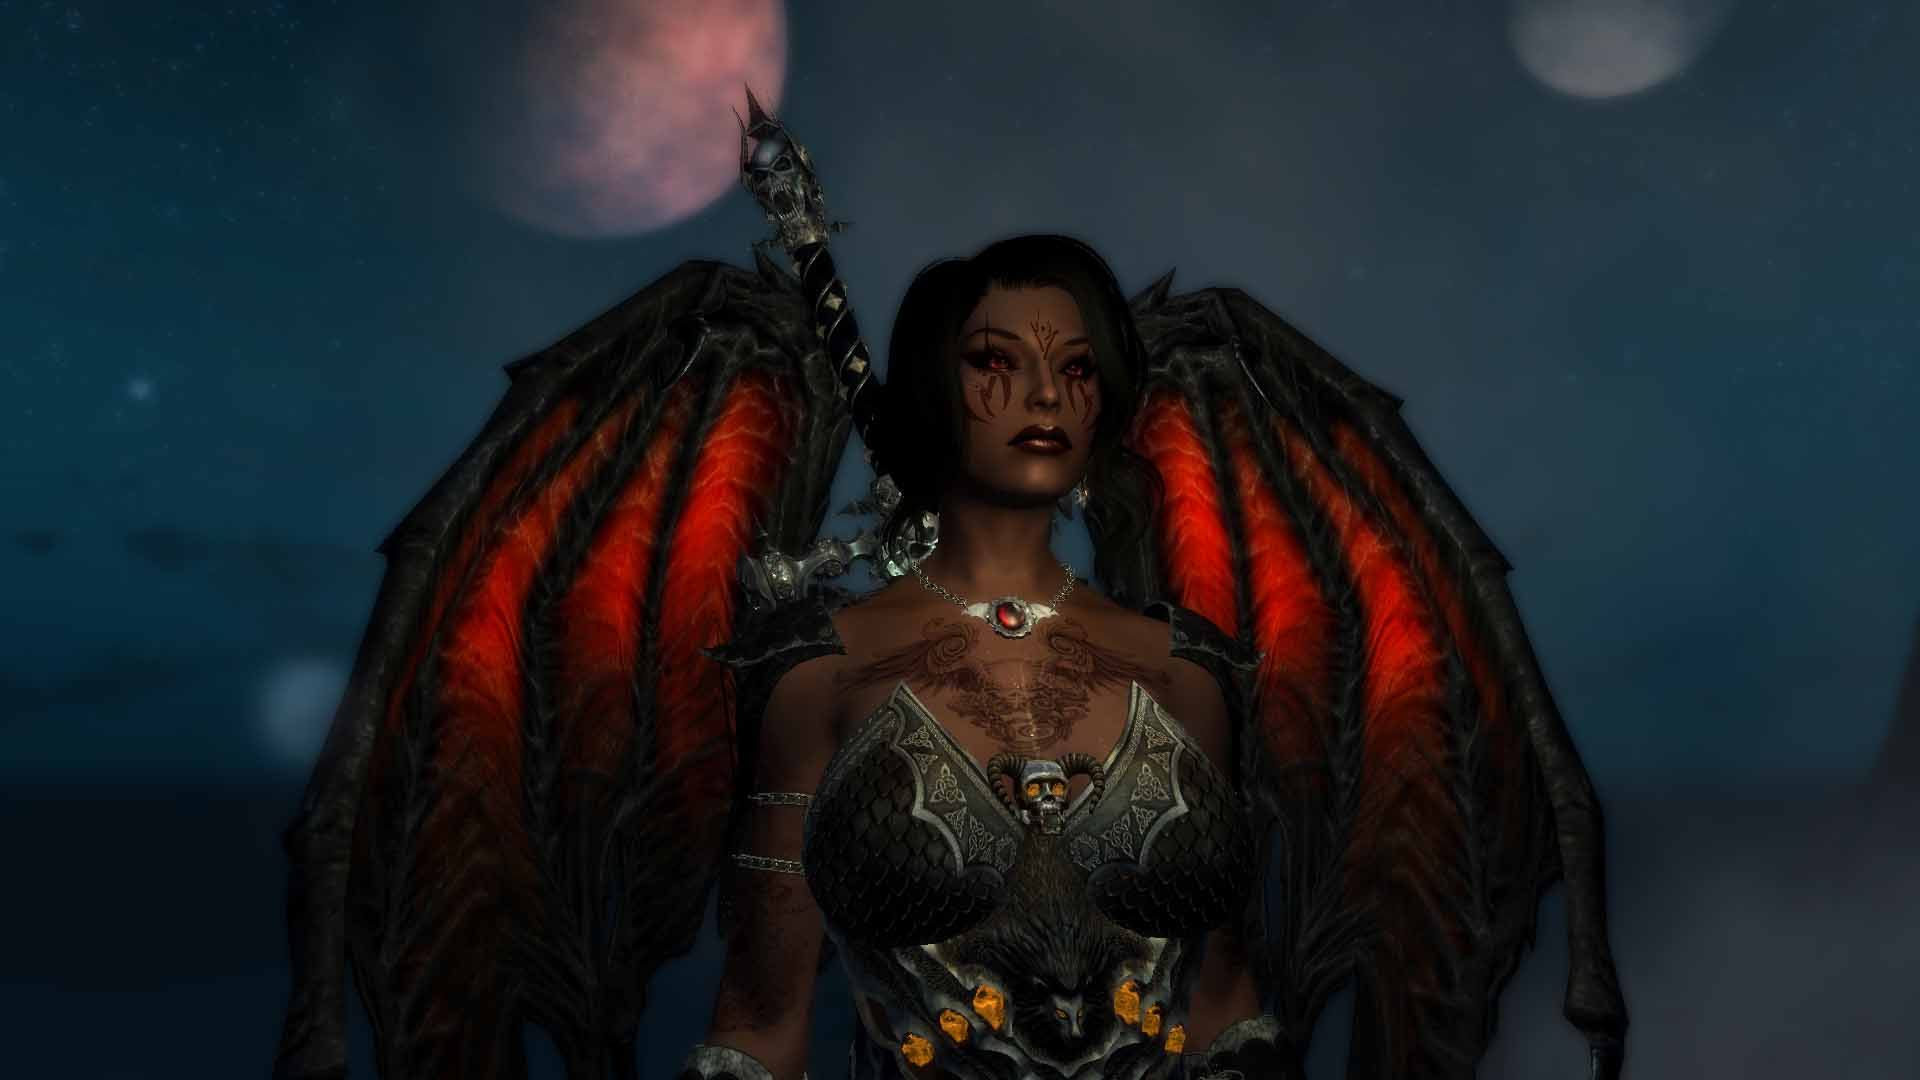 Queen Of The Damned 2 At Skyrim Nexus Mods And Community